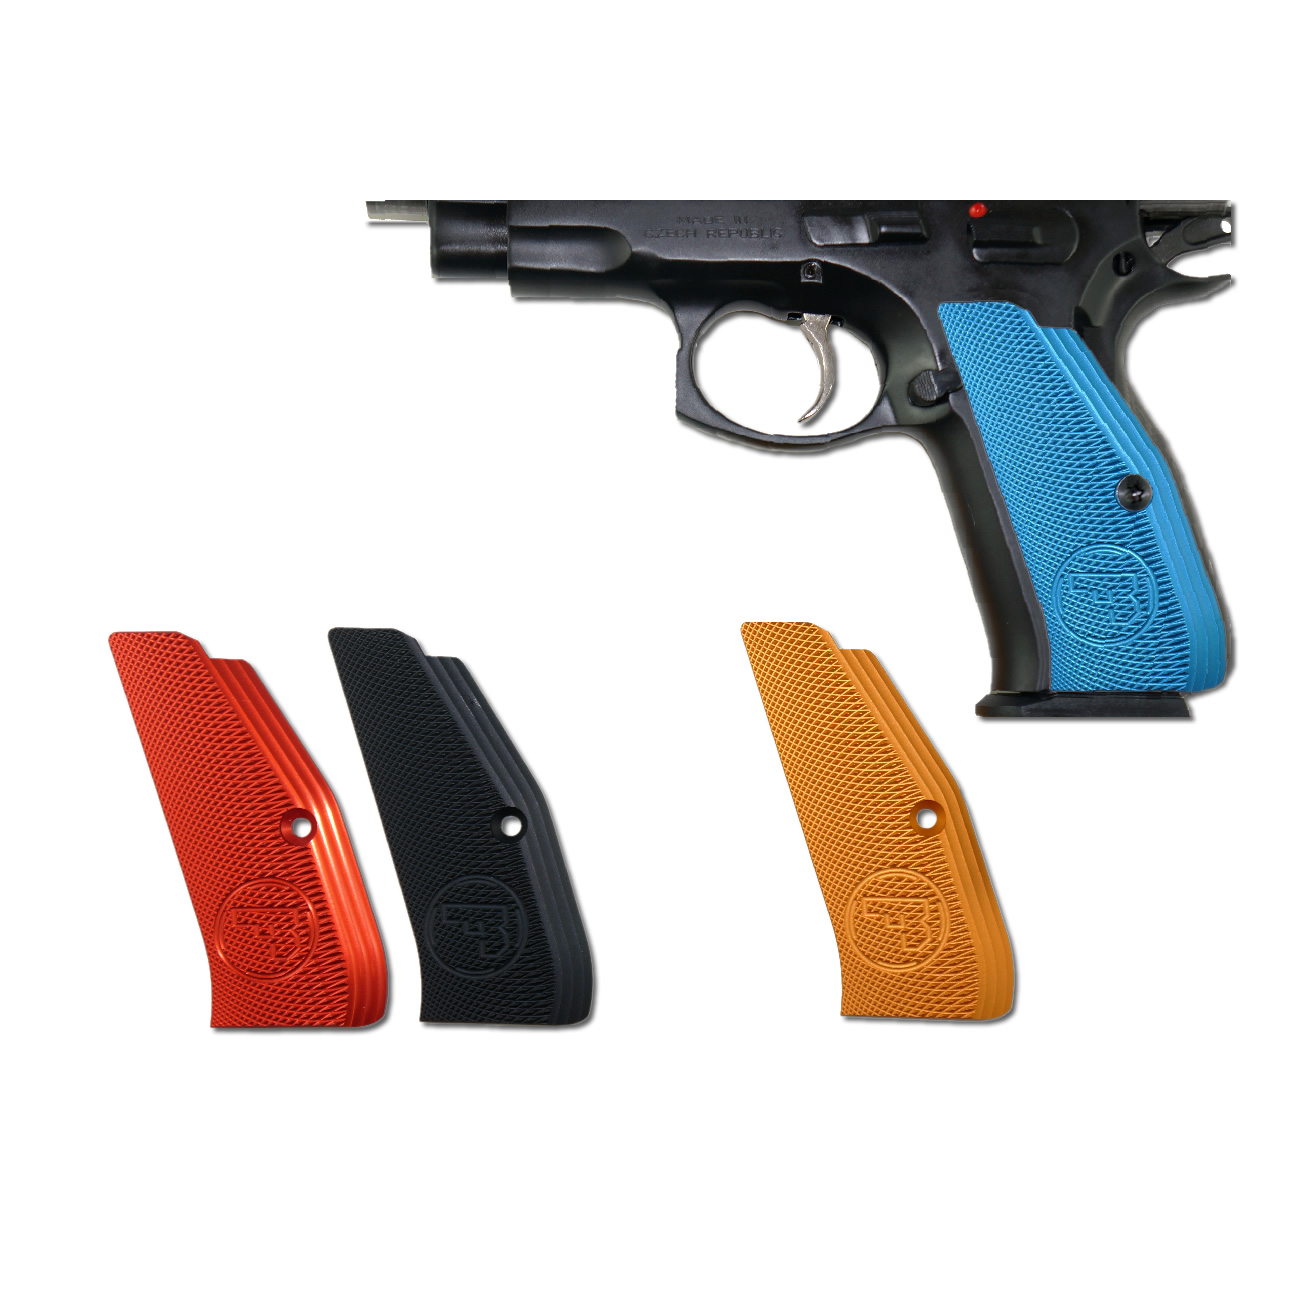 CZ Low Profile Grips, Blue anodized Aluminum